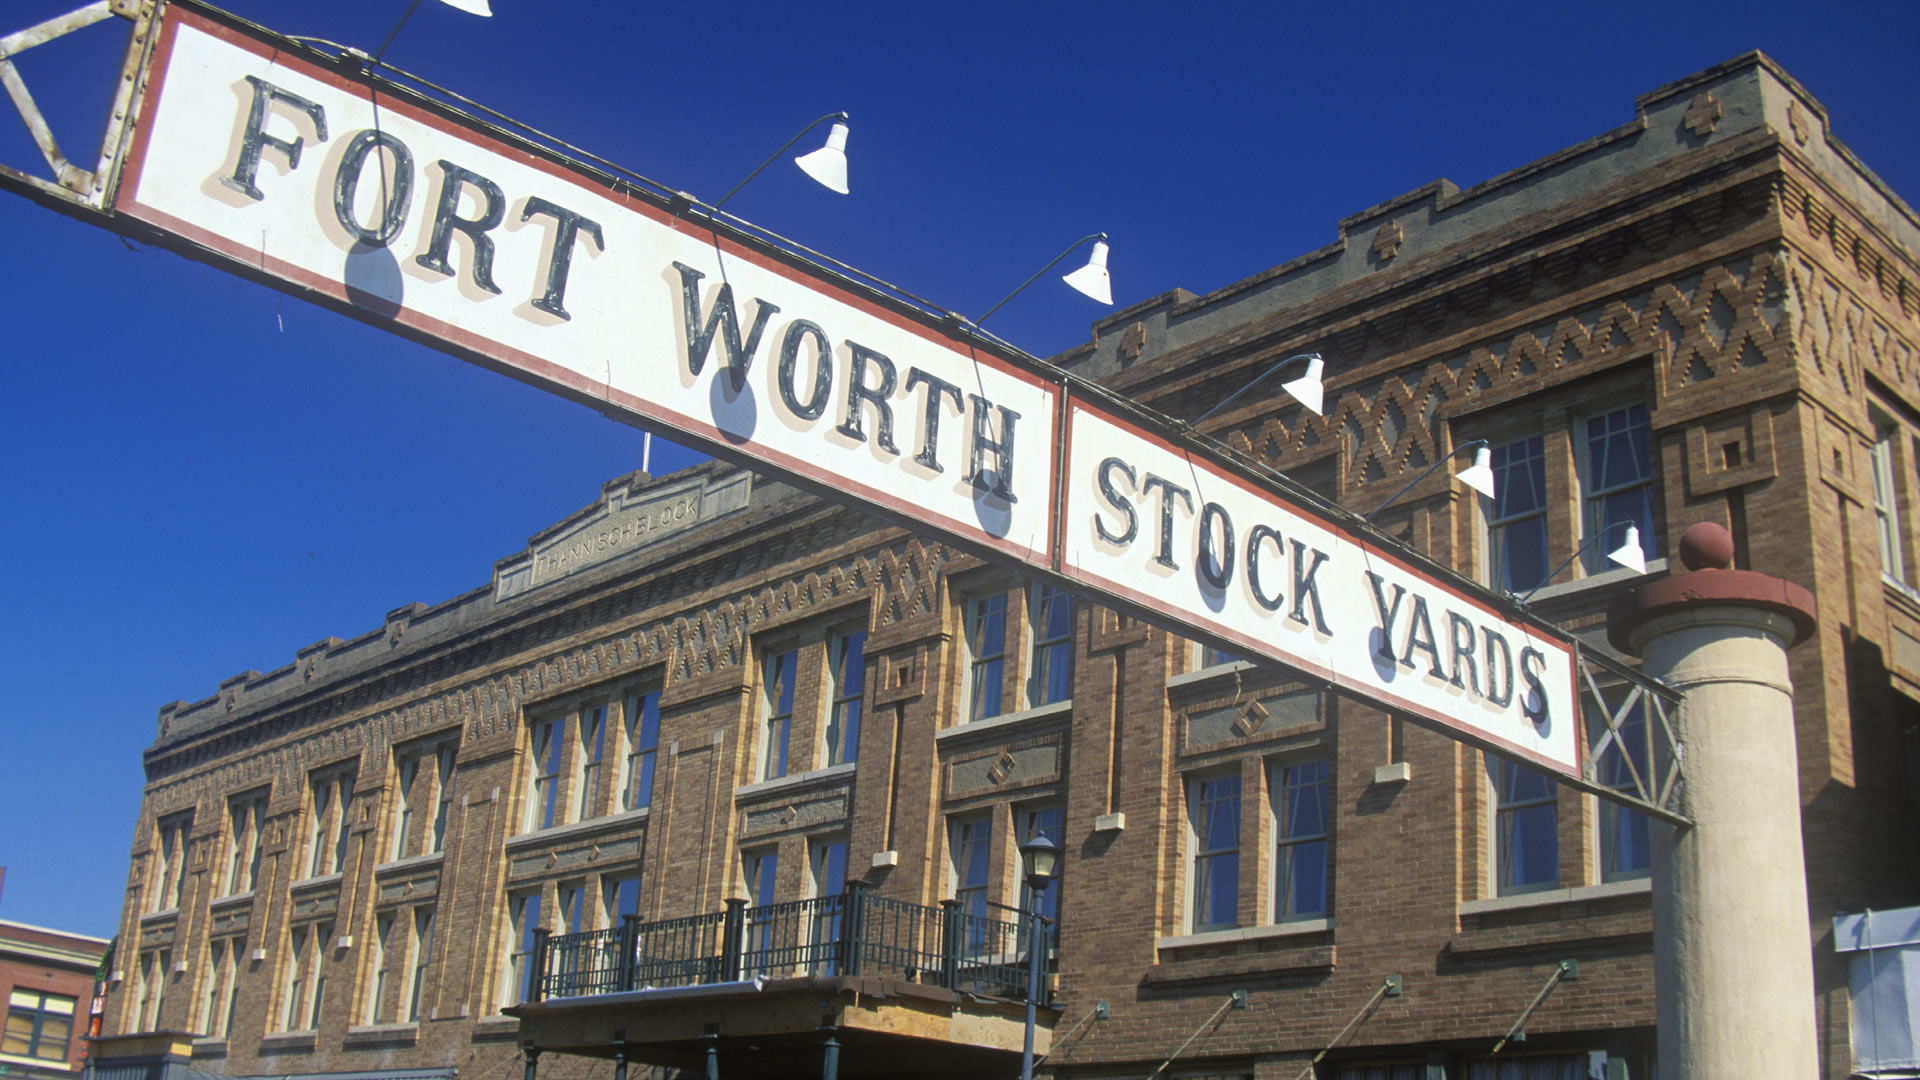 Banner at the Fort Worth Stockyards with historic hotel, Ft. Worth, TX